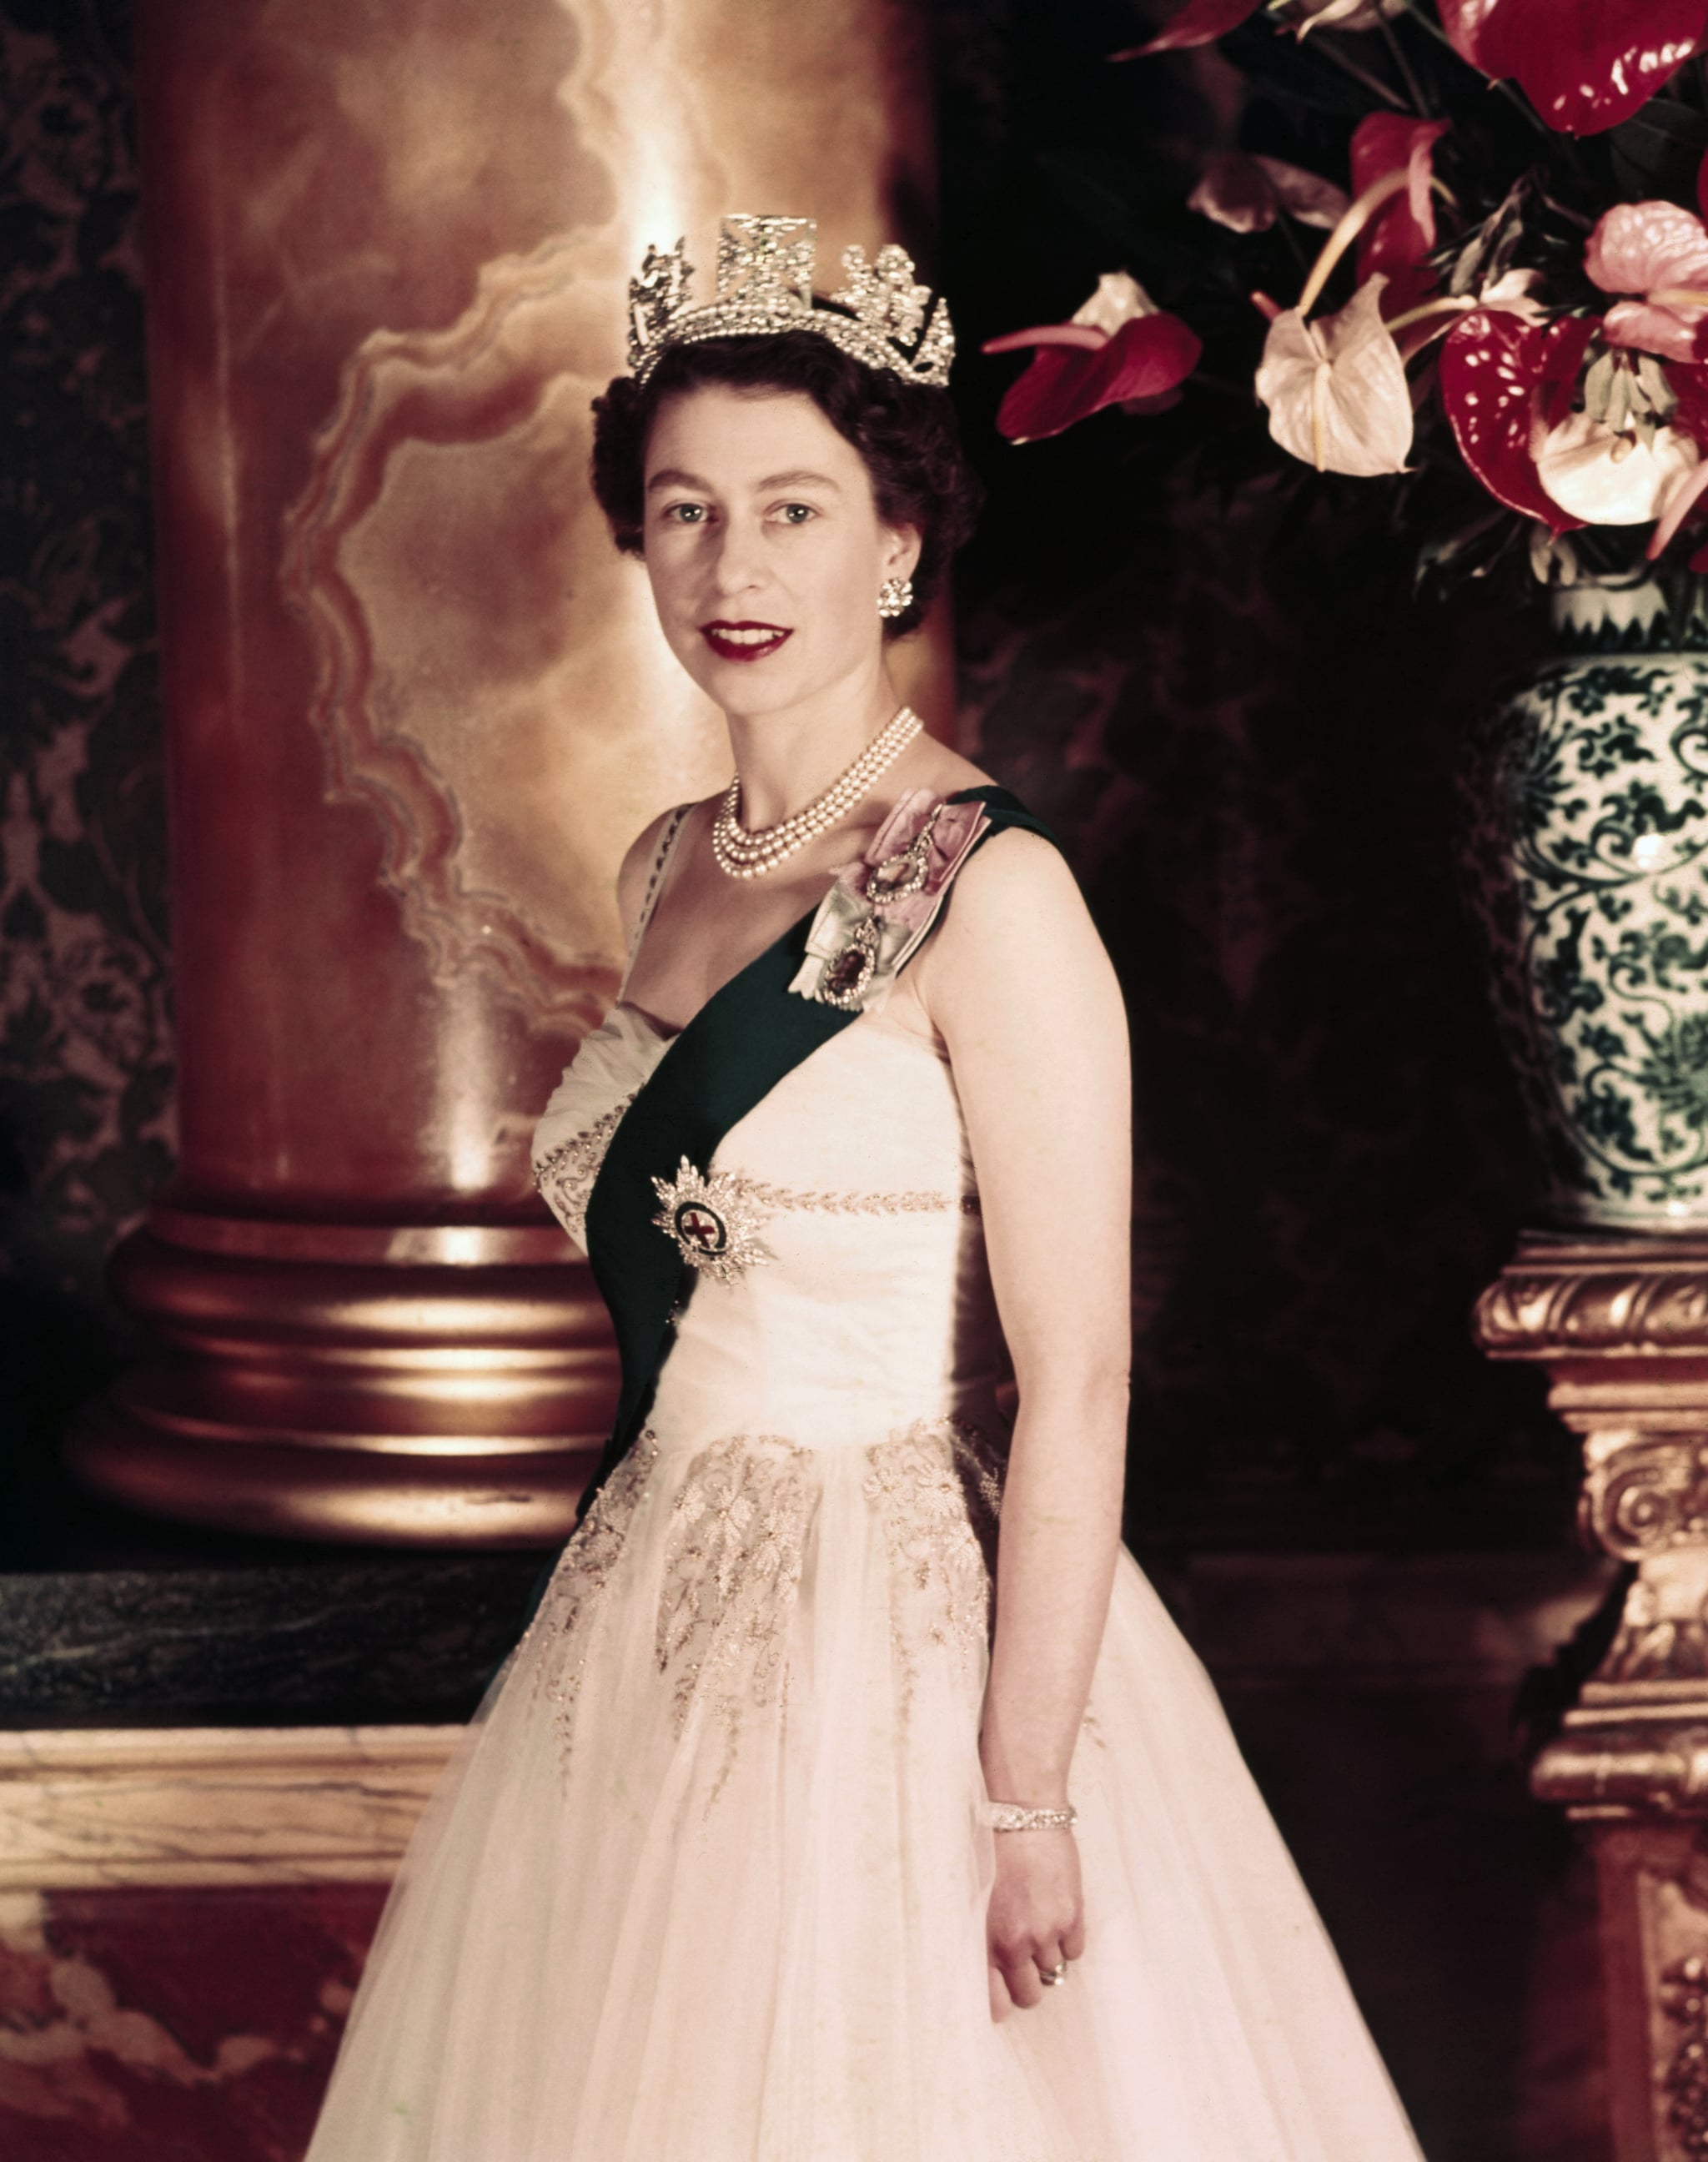 1/24/1955- Queen Elizabeth II wearing crown. Portrait. UPI colour slides.